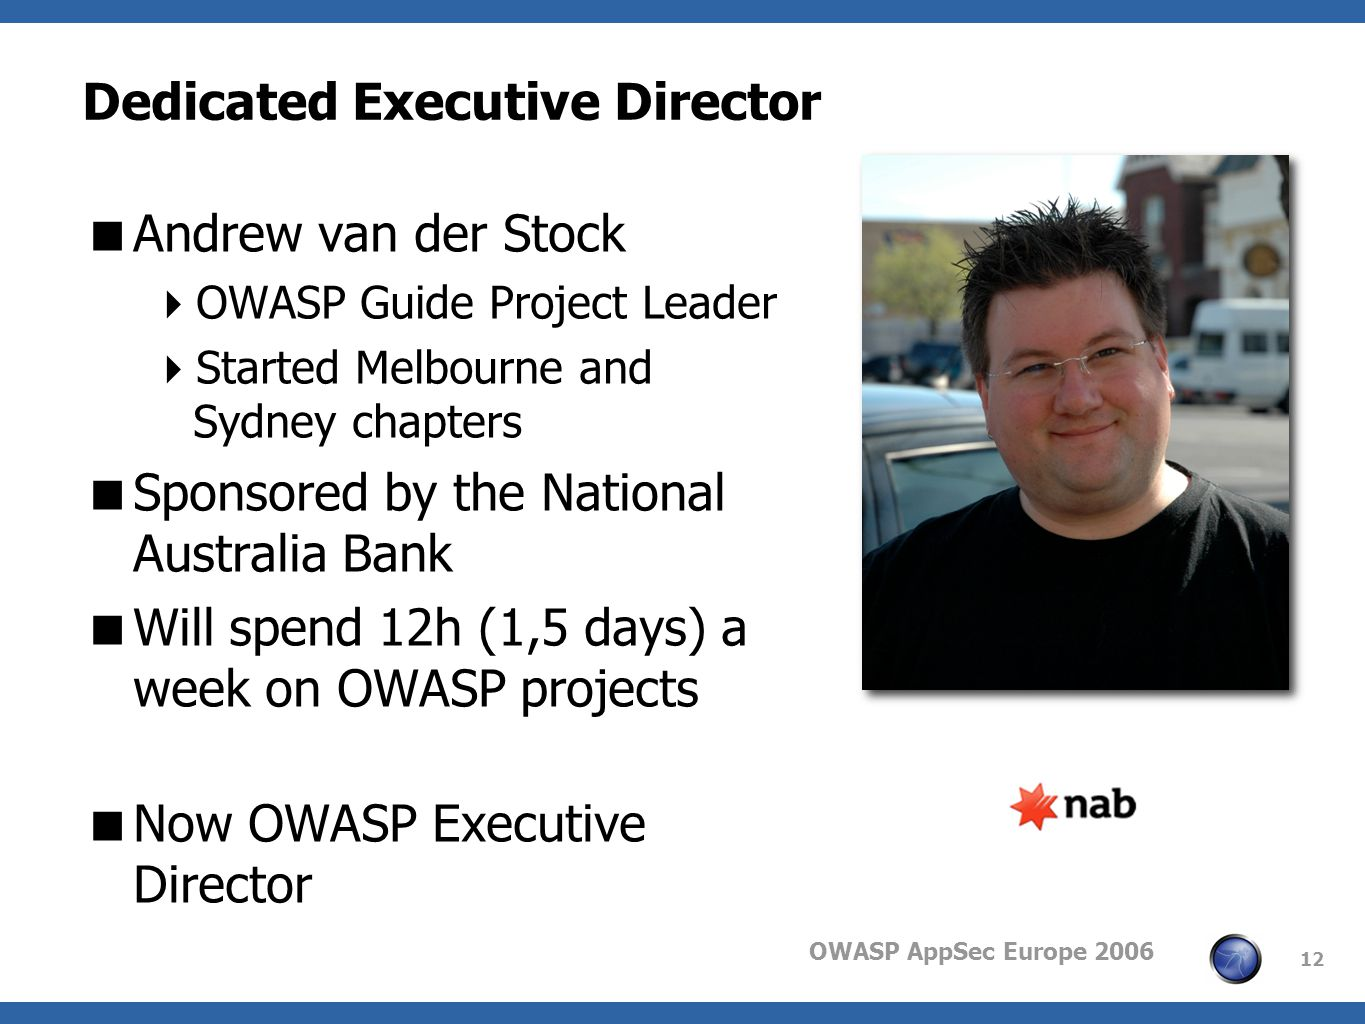 OWASP AppSec Europe 2006 12 Dedicated Executive Director Andrew van der Stock OWASP Guide Project Leader Started Melbourne and Sydney chapters Sponsor